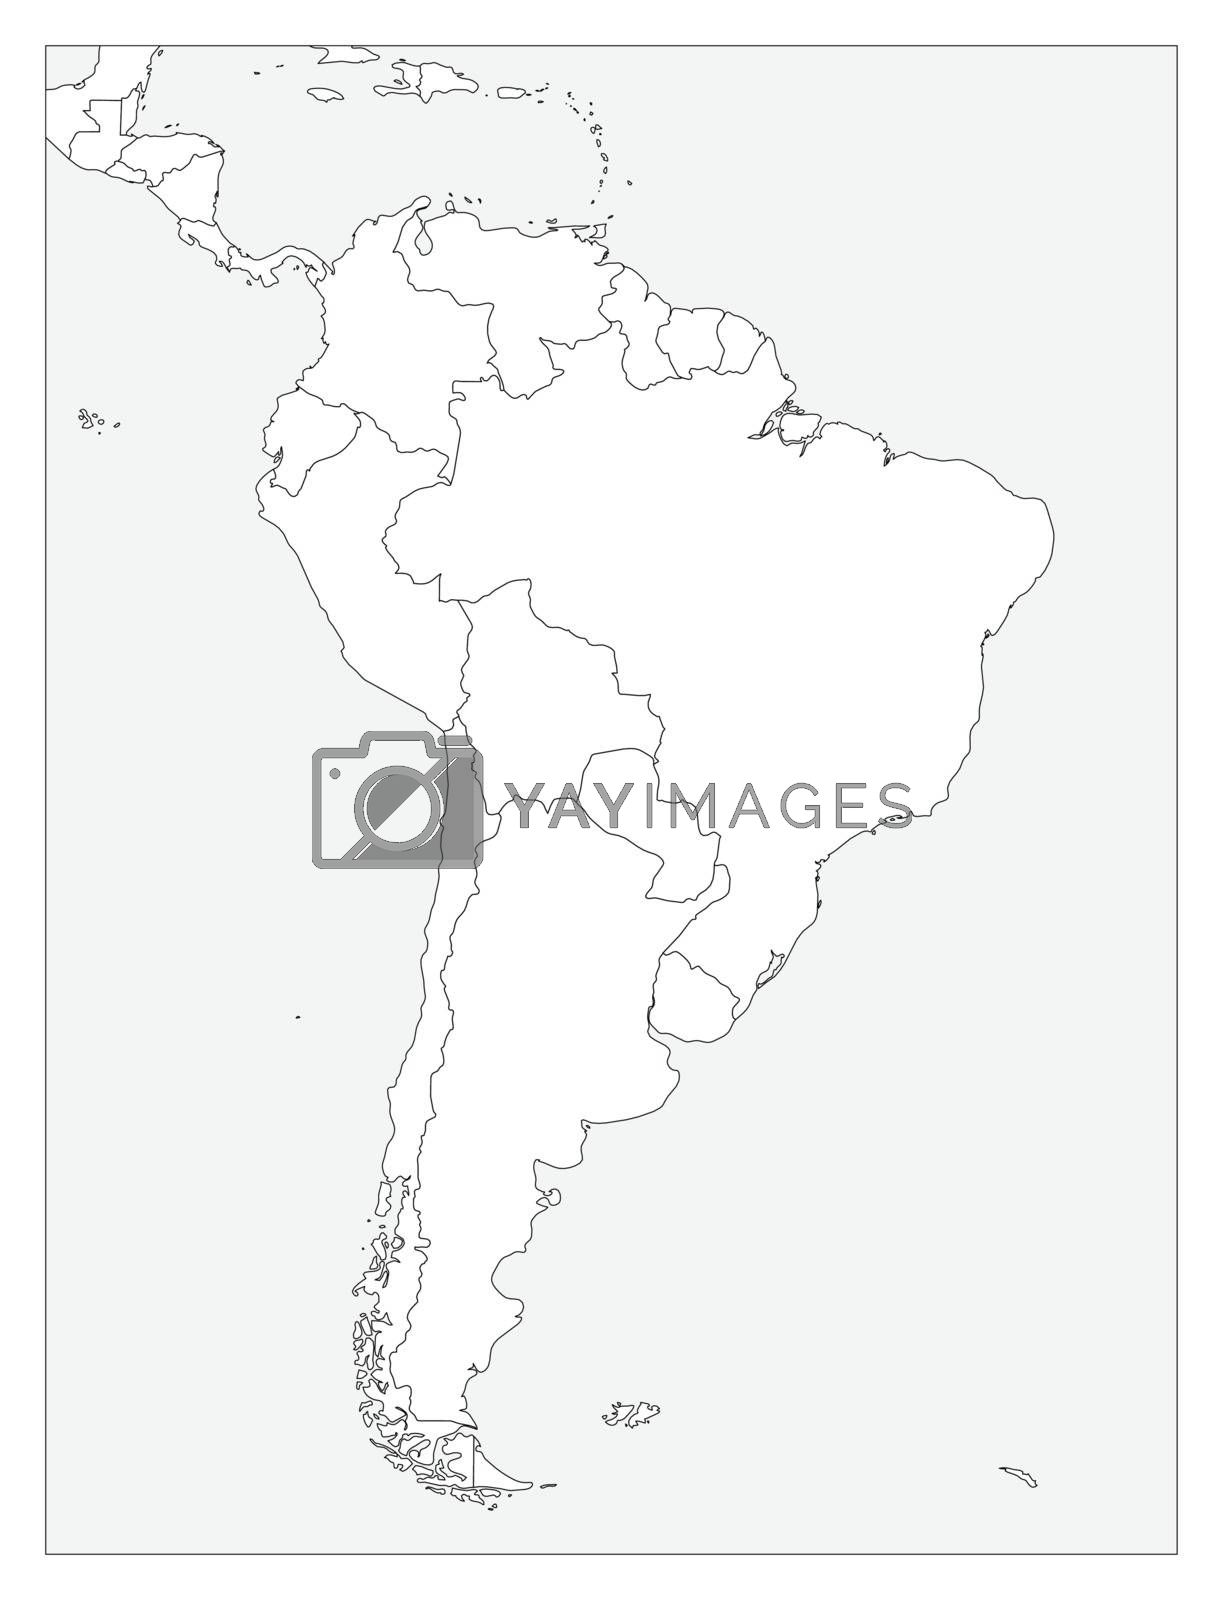 Picture of: Blank Political Map Of South America Simple Flat Vector Outline Map Royalty Free Stock Image Stock Photos Royalty Free Images Vectors Footage Yayimages